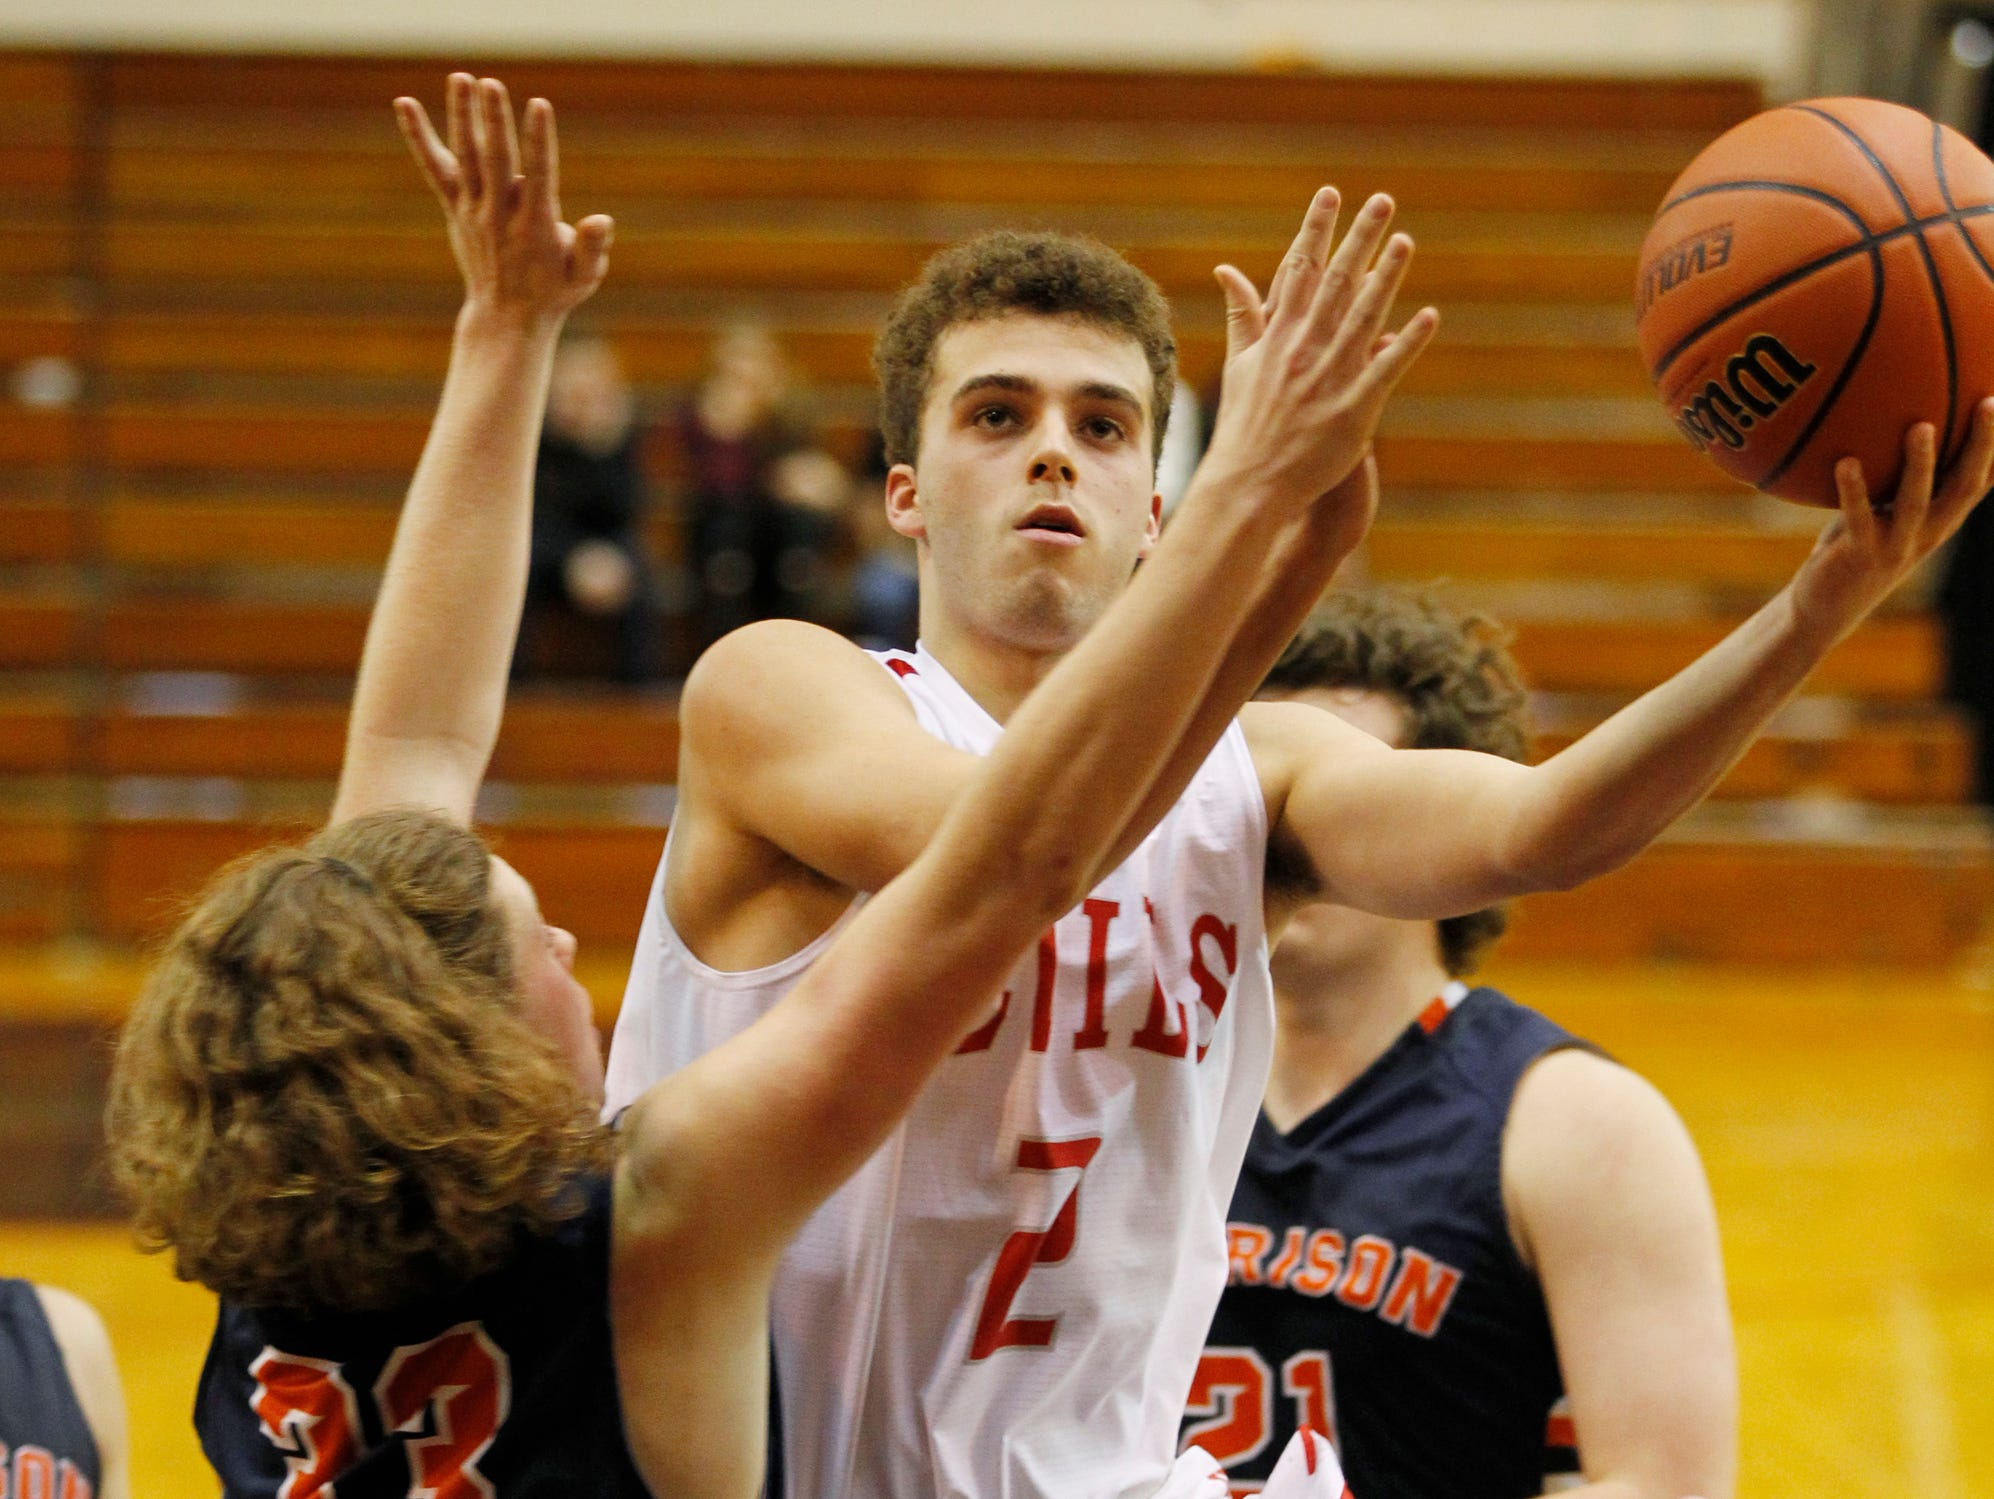 West Lafayette's Charlie Nycz with a drive down the lane against Harrison in the J&C Hoops Classic Tuesday, December 1, 2015, at Lafayette Jeff. Harrison defeated West Lafayette 52-40.